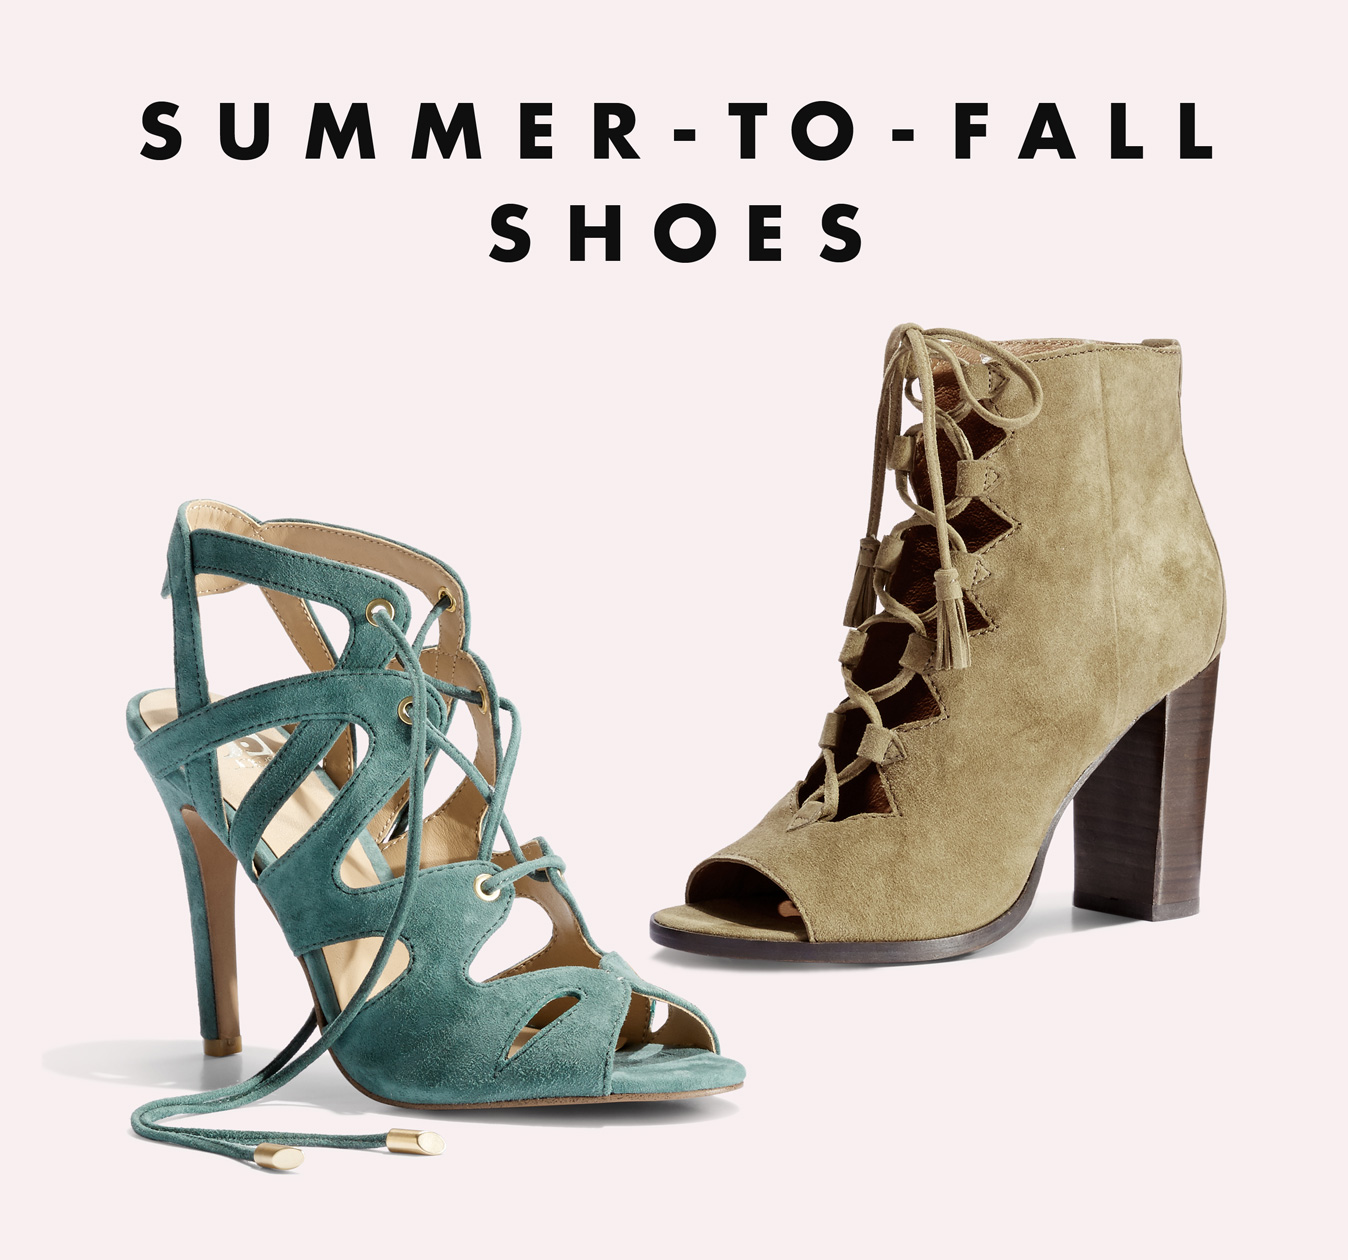 Summer to Fall Shoes